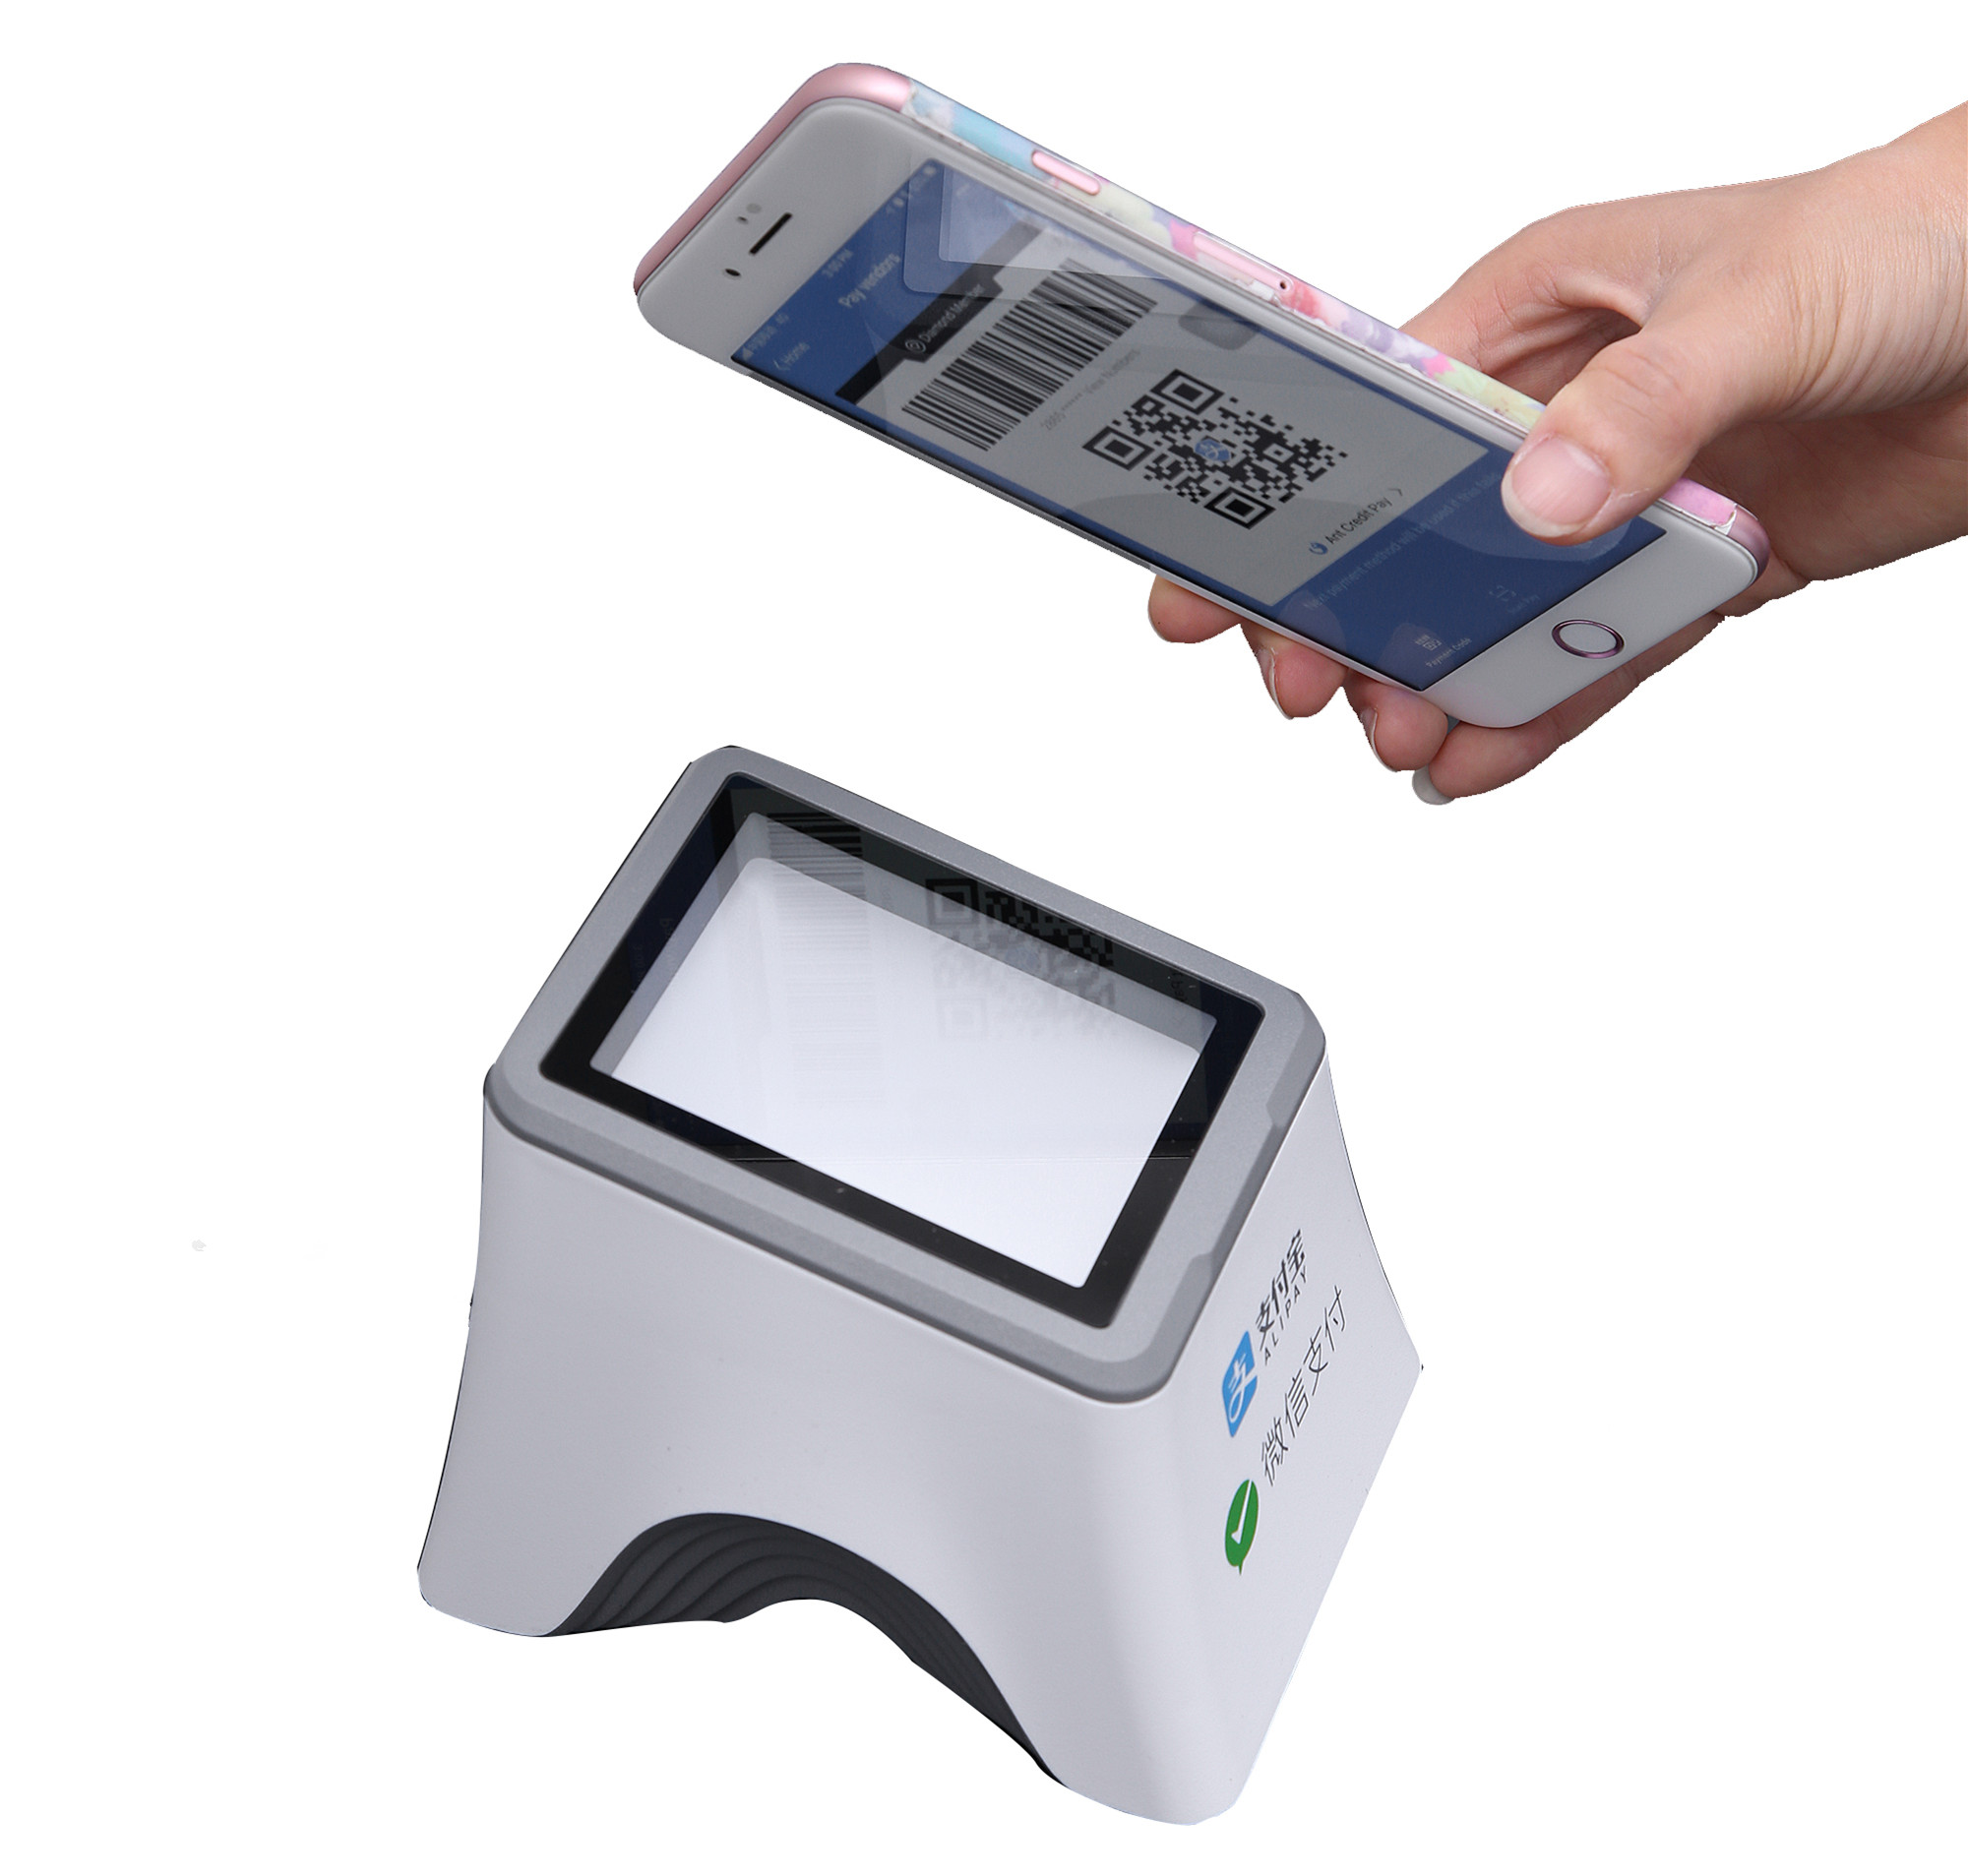 1D 2D Rfid portatile Bluetooth Auto Bar Codice Microchip Radio Wireless Android QR Barcode Scanner per Passport Police Book Printer